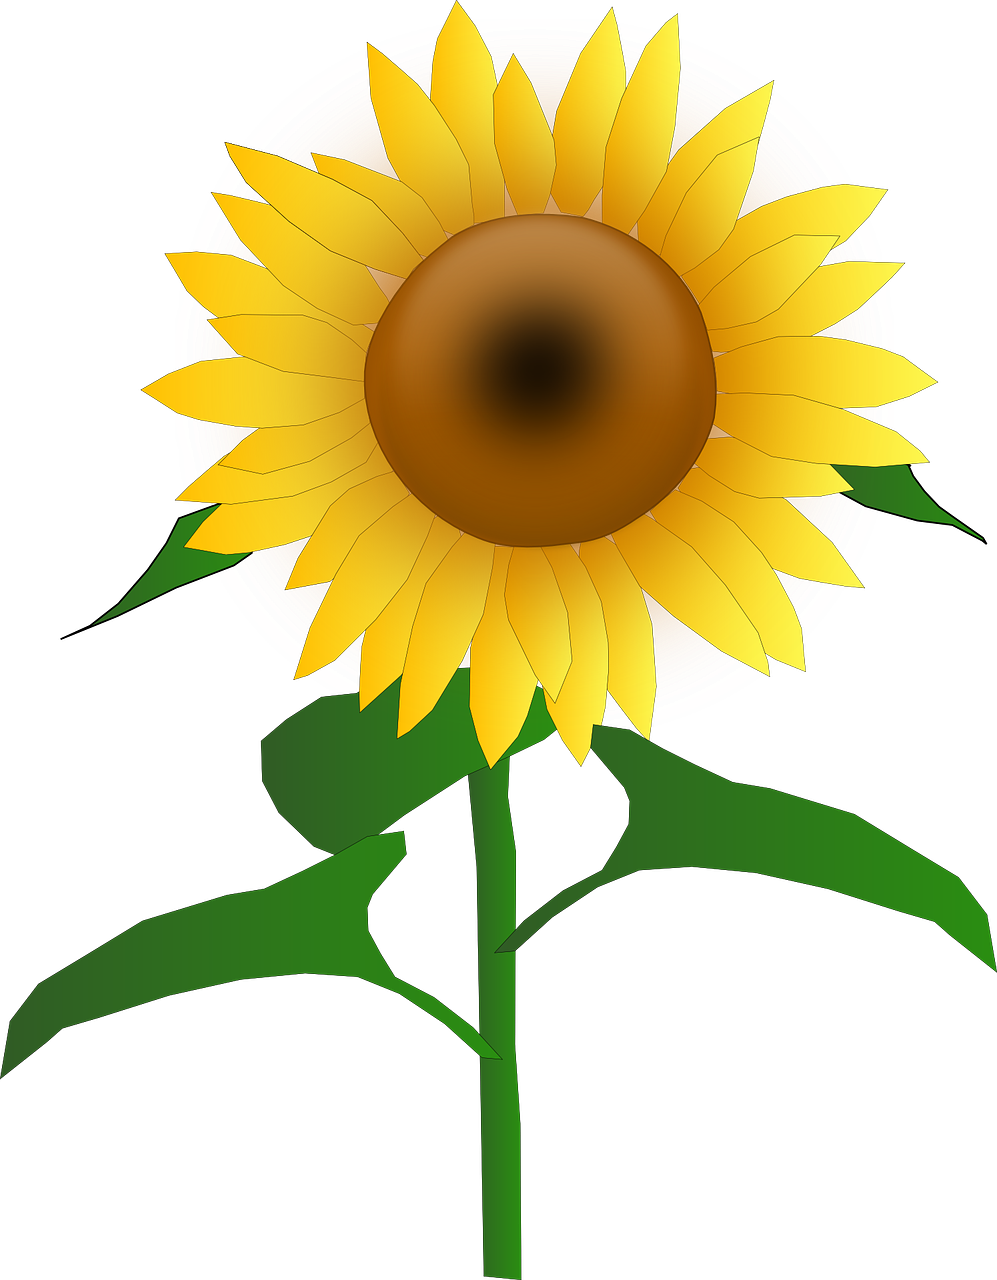 Blooms blossom golden yellow. Sunflower vector png